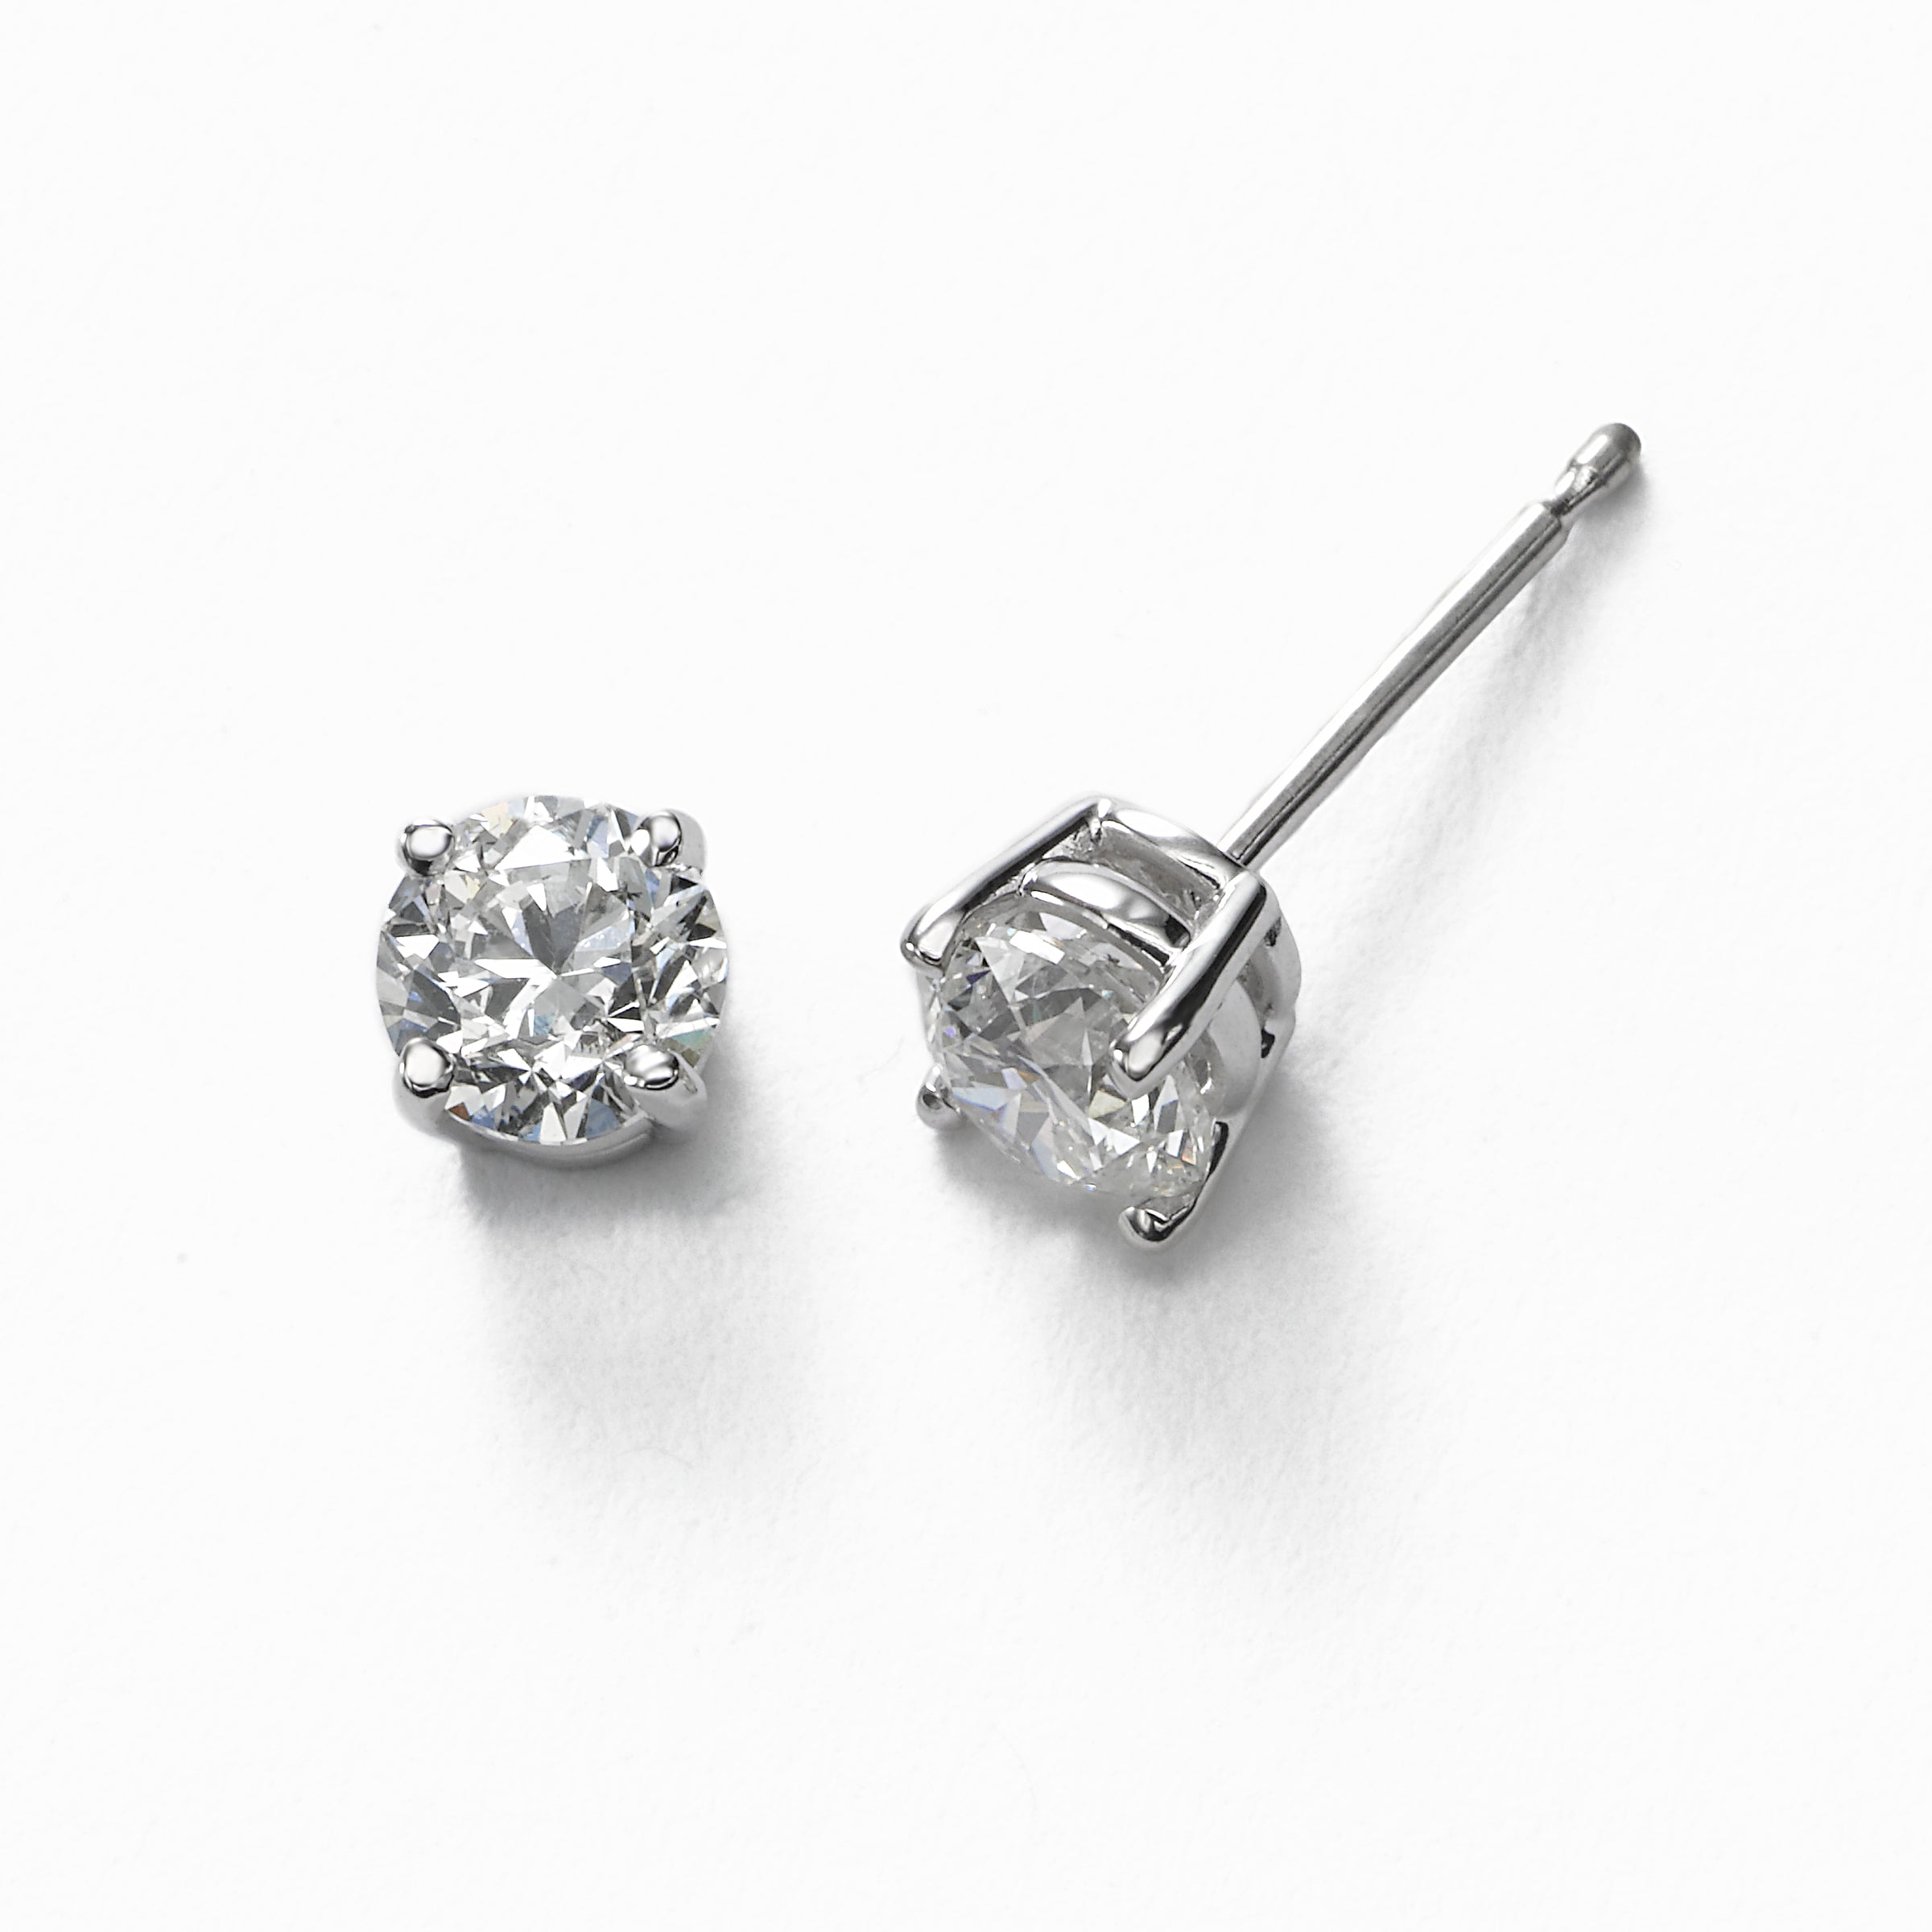 Diamond Stud Earrings, .90 Carat total, H/I-SI2, 14K White Gold